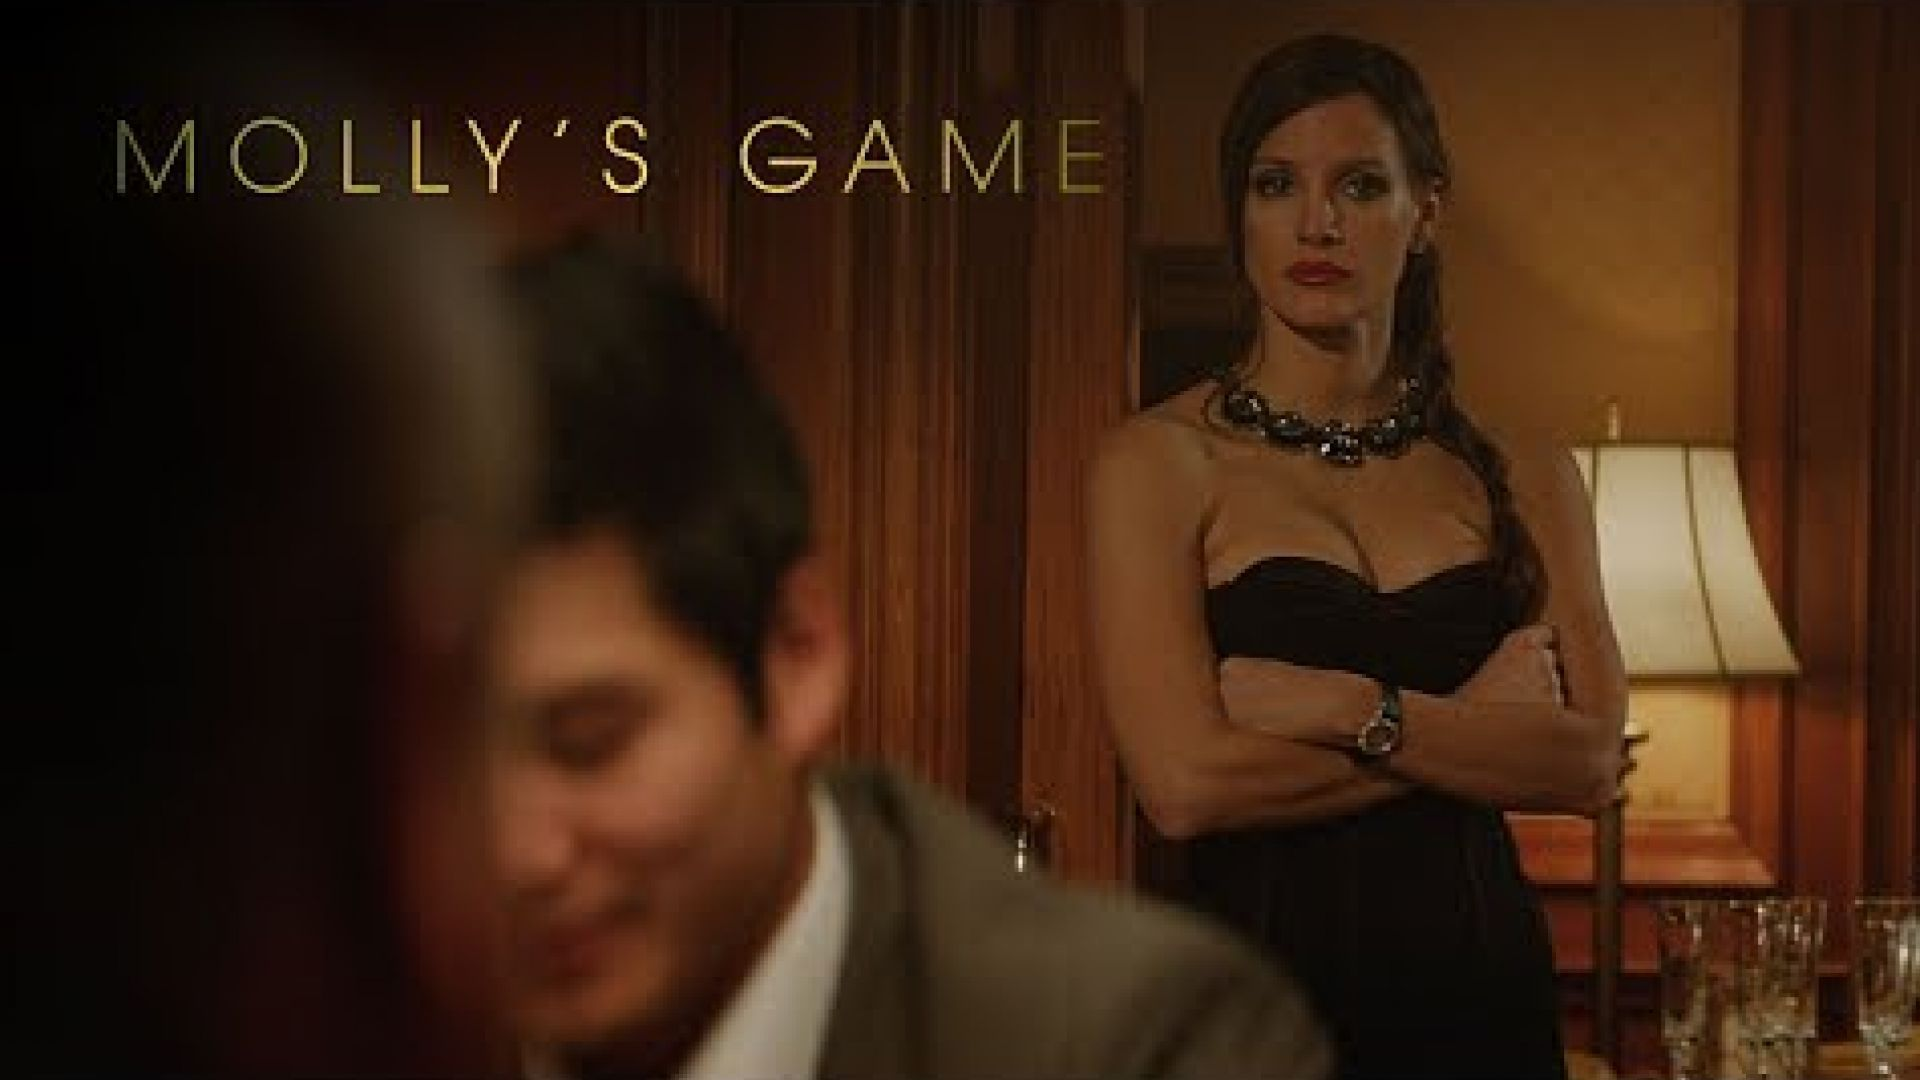 The stakes are high in Aaron Sorkin's 'Molly's Game' (teaser ...